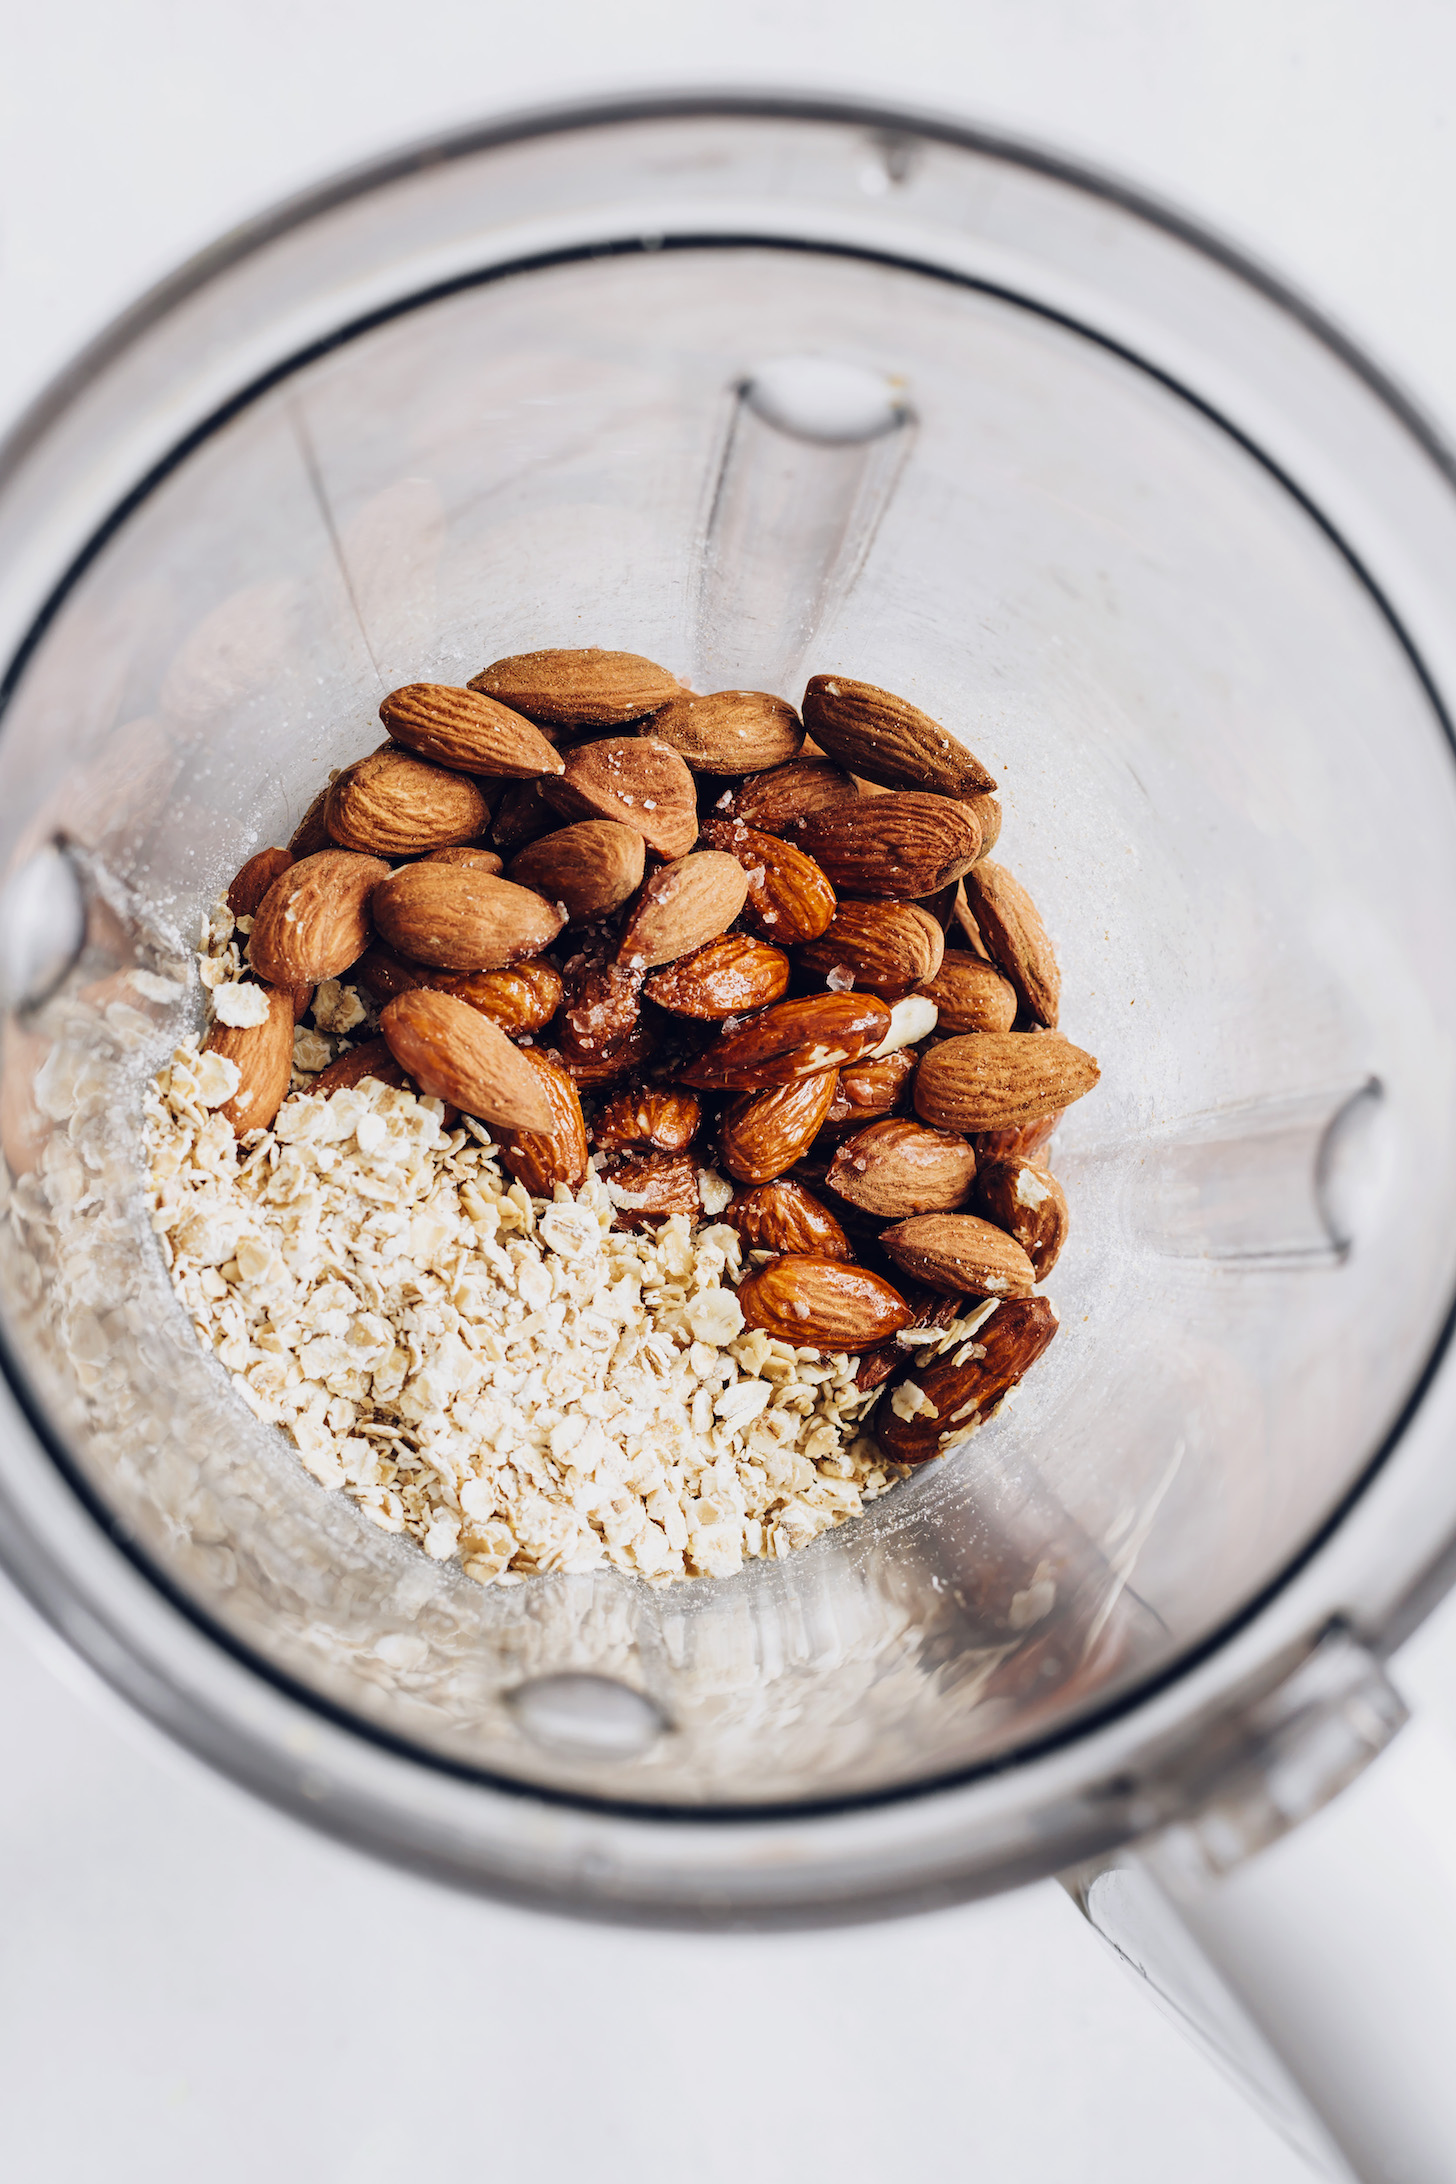 Blender with almonds, oats, sea salt, maple syrup, and coconut oil